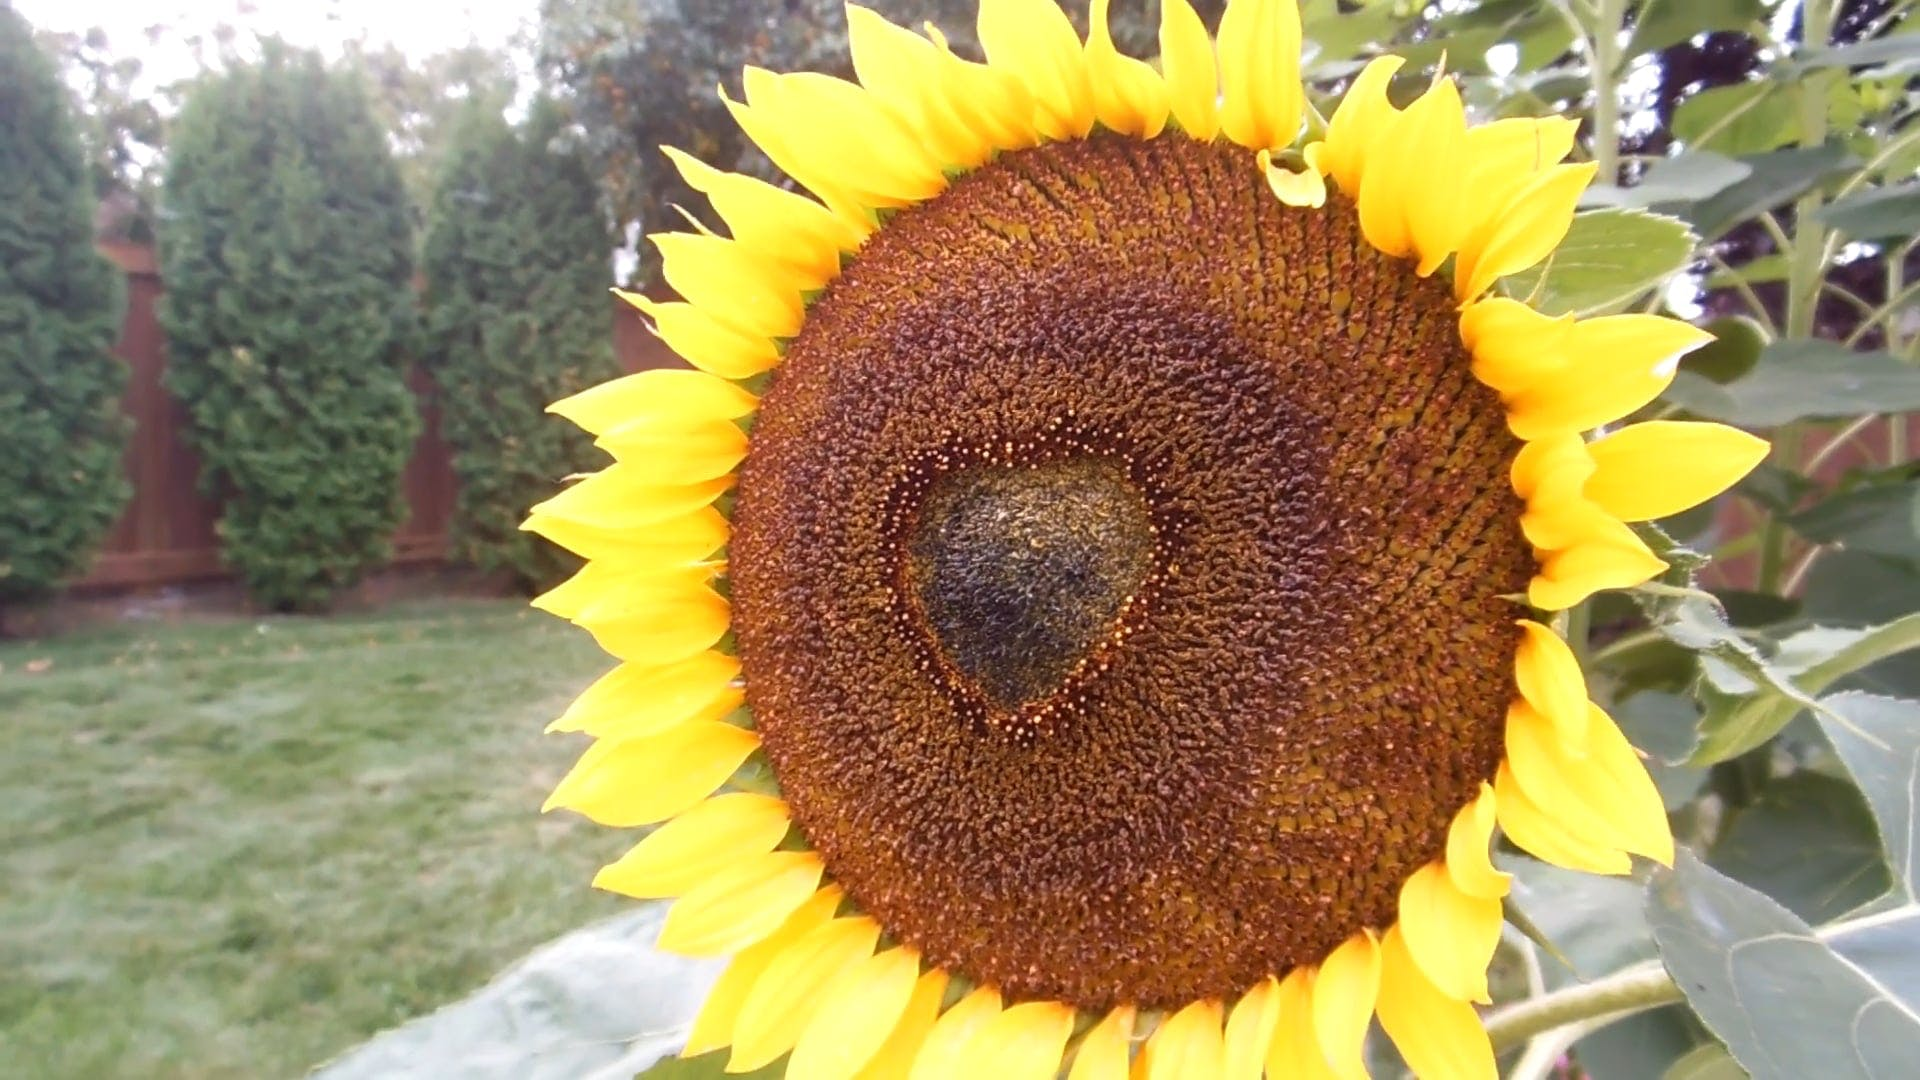 A Special Sunflower With A Heart